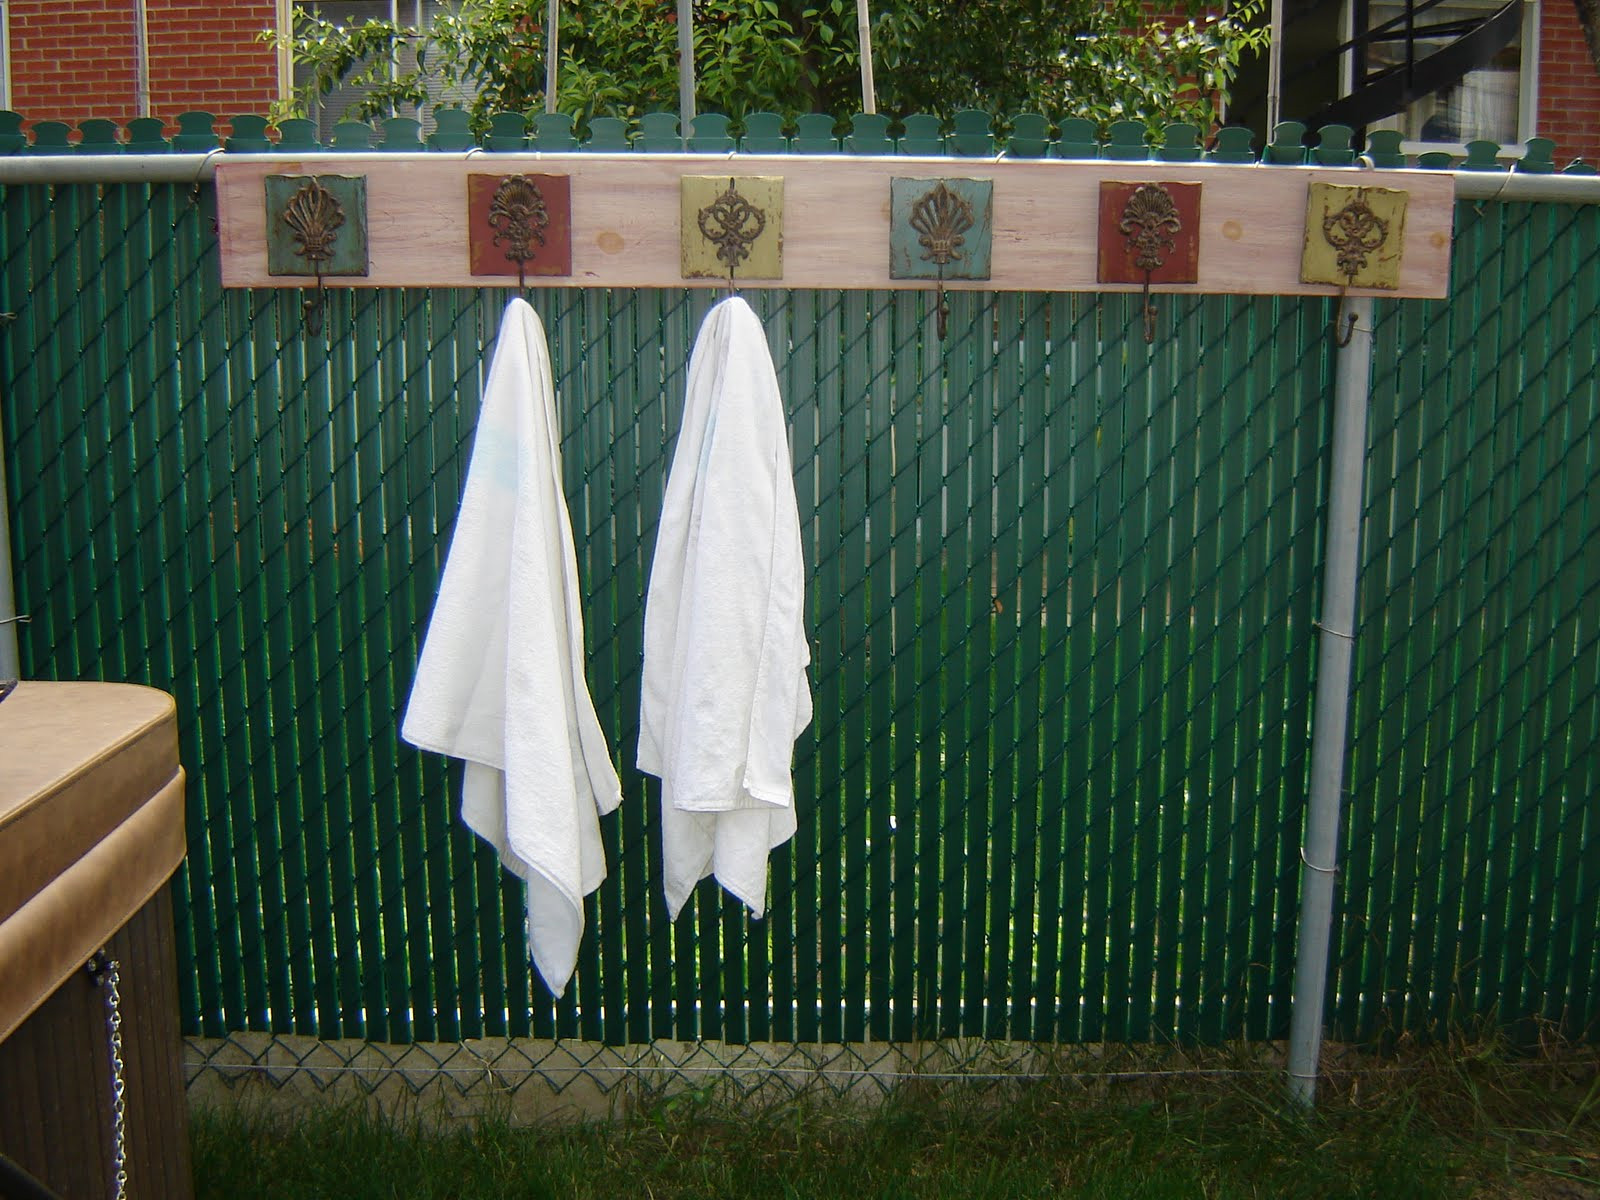 Best ideas about DIY Outdoor Towel Rack . Save or Pin Dream it it yle it DIY outdoor towel rack Now.